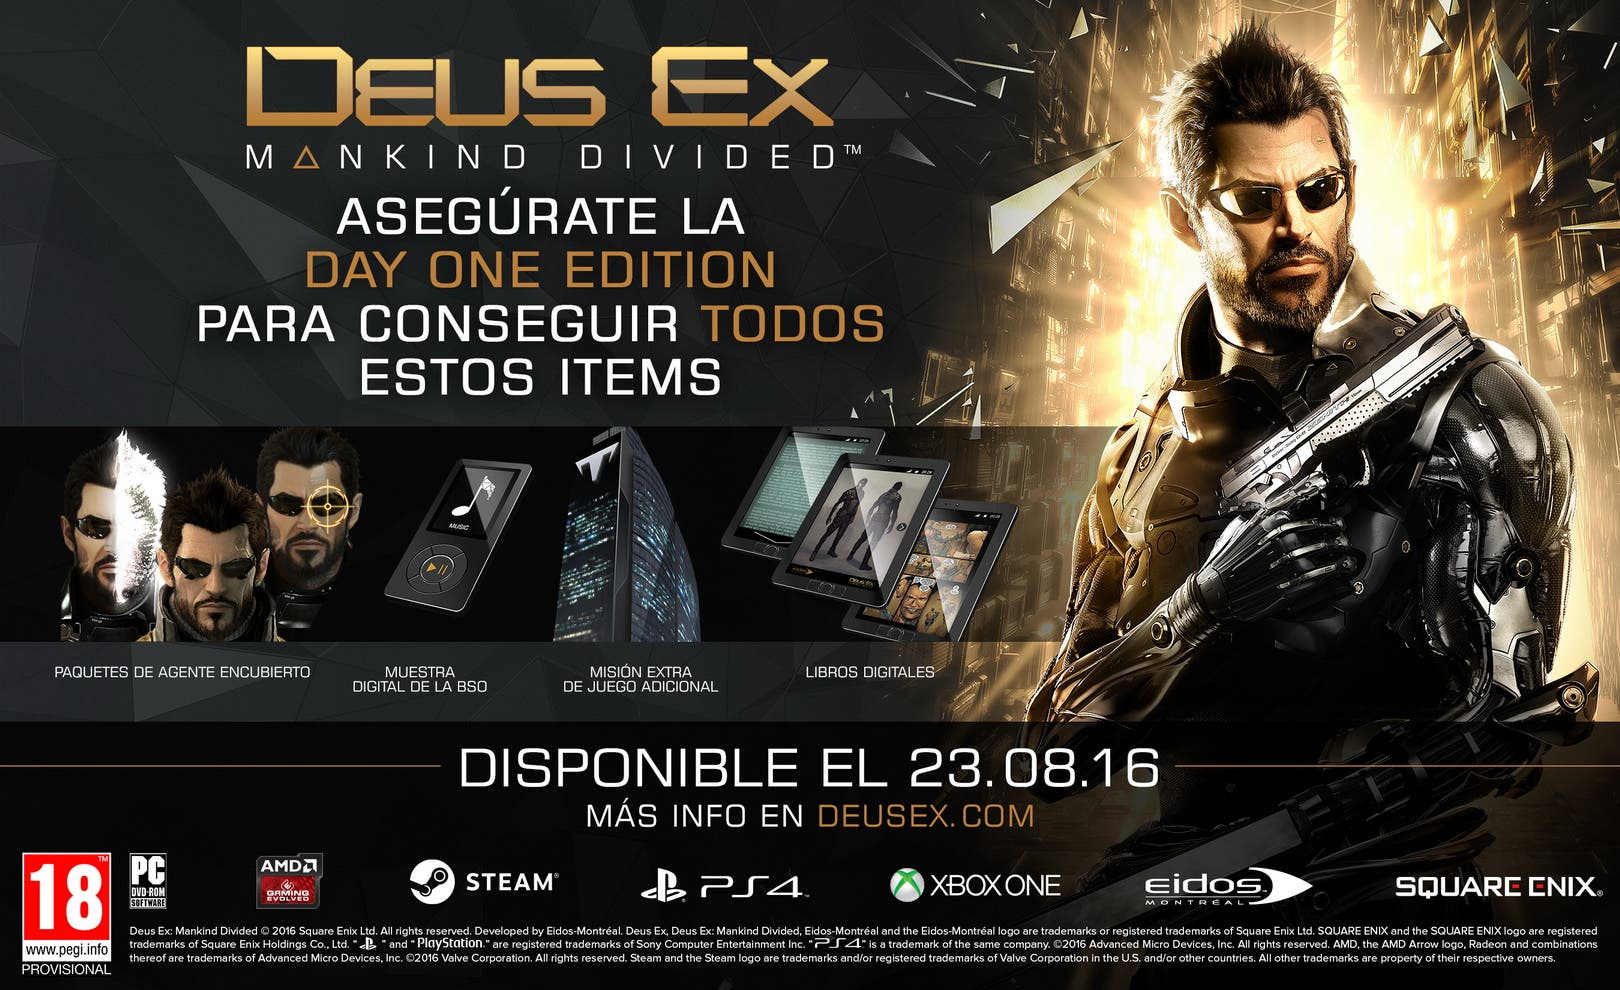 Deus Ex Mankind Divided edición day one